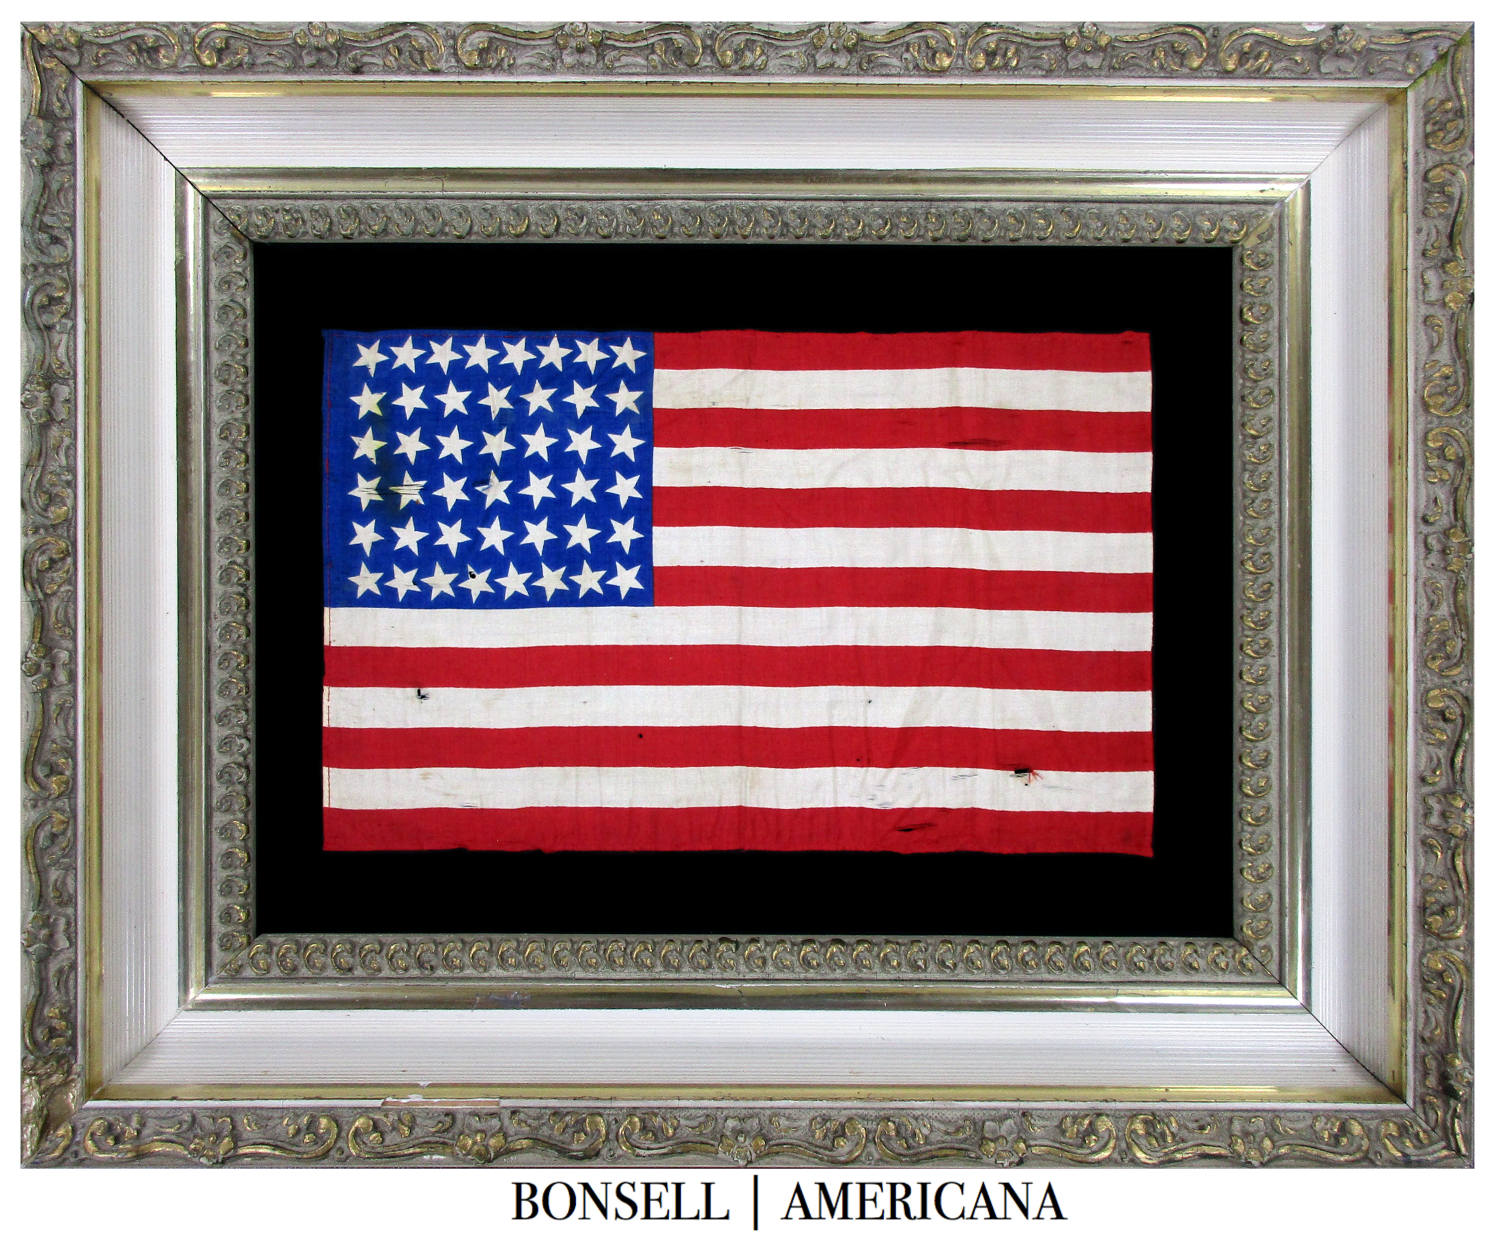 44 Star Antique Silk American Flag